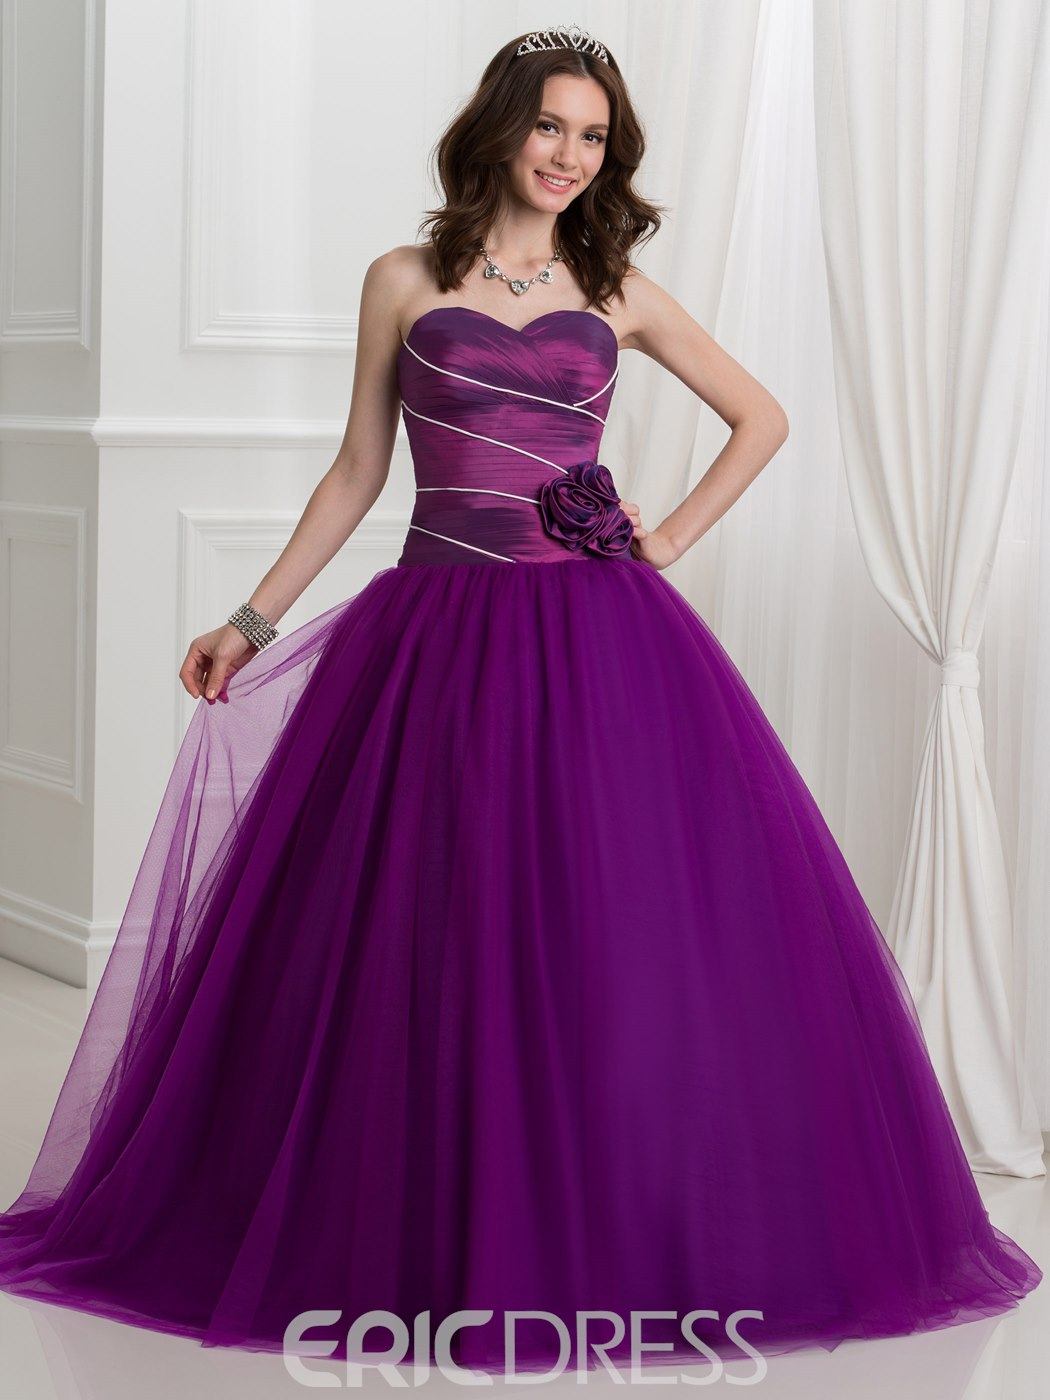 Ericdress Sweetheart Flowers Pleats Ball Gown Quinceanera Dress